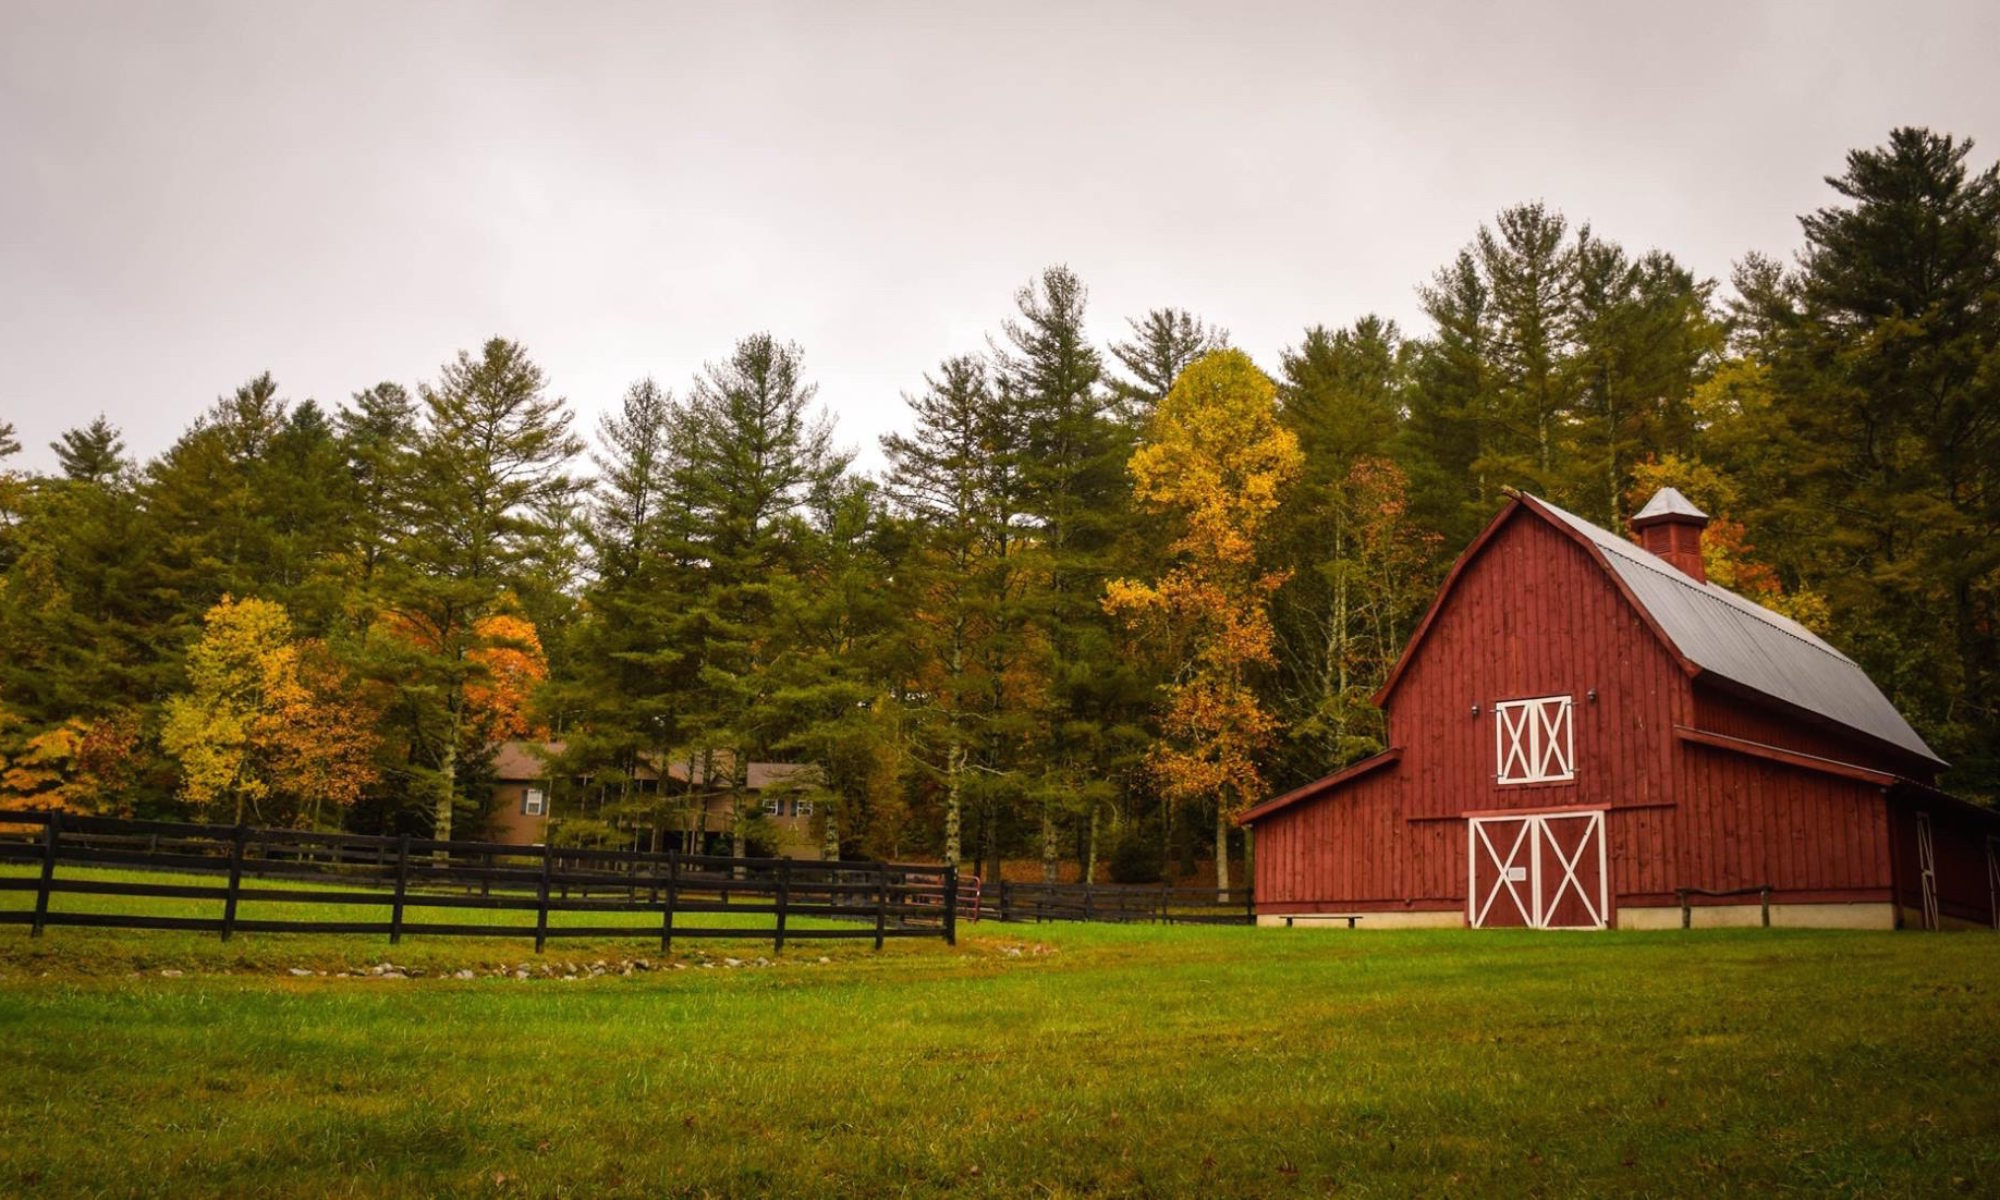 Food, Farm & Faith - Reflections on the intersection of these in my ...